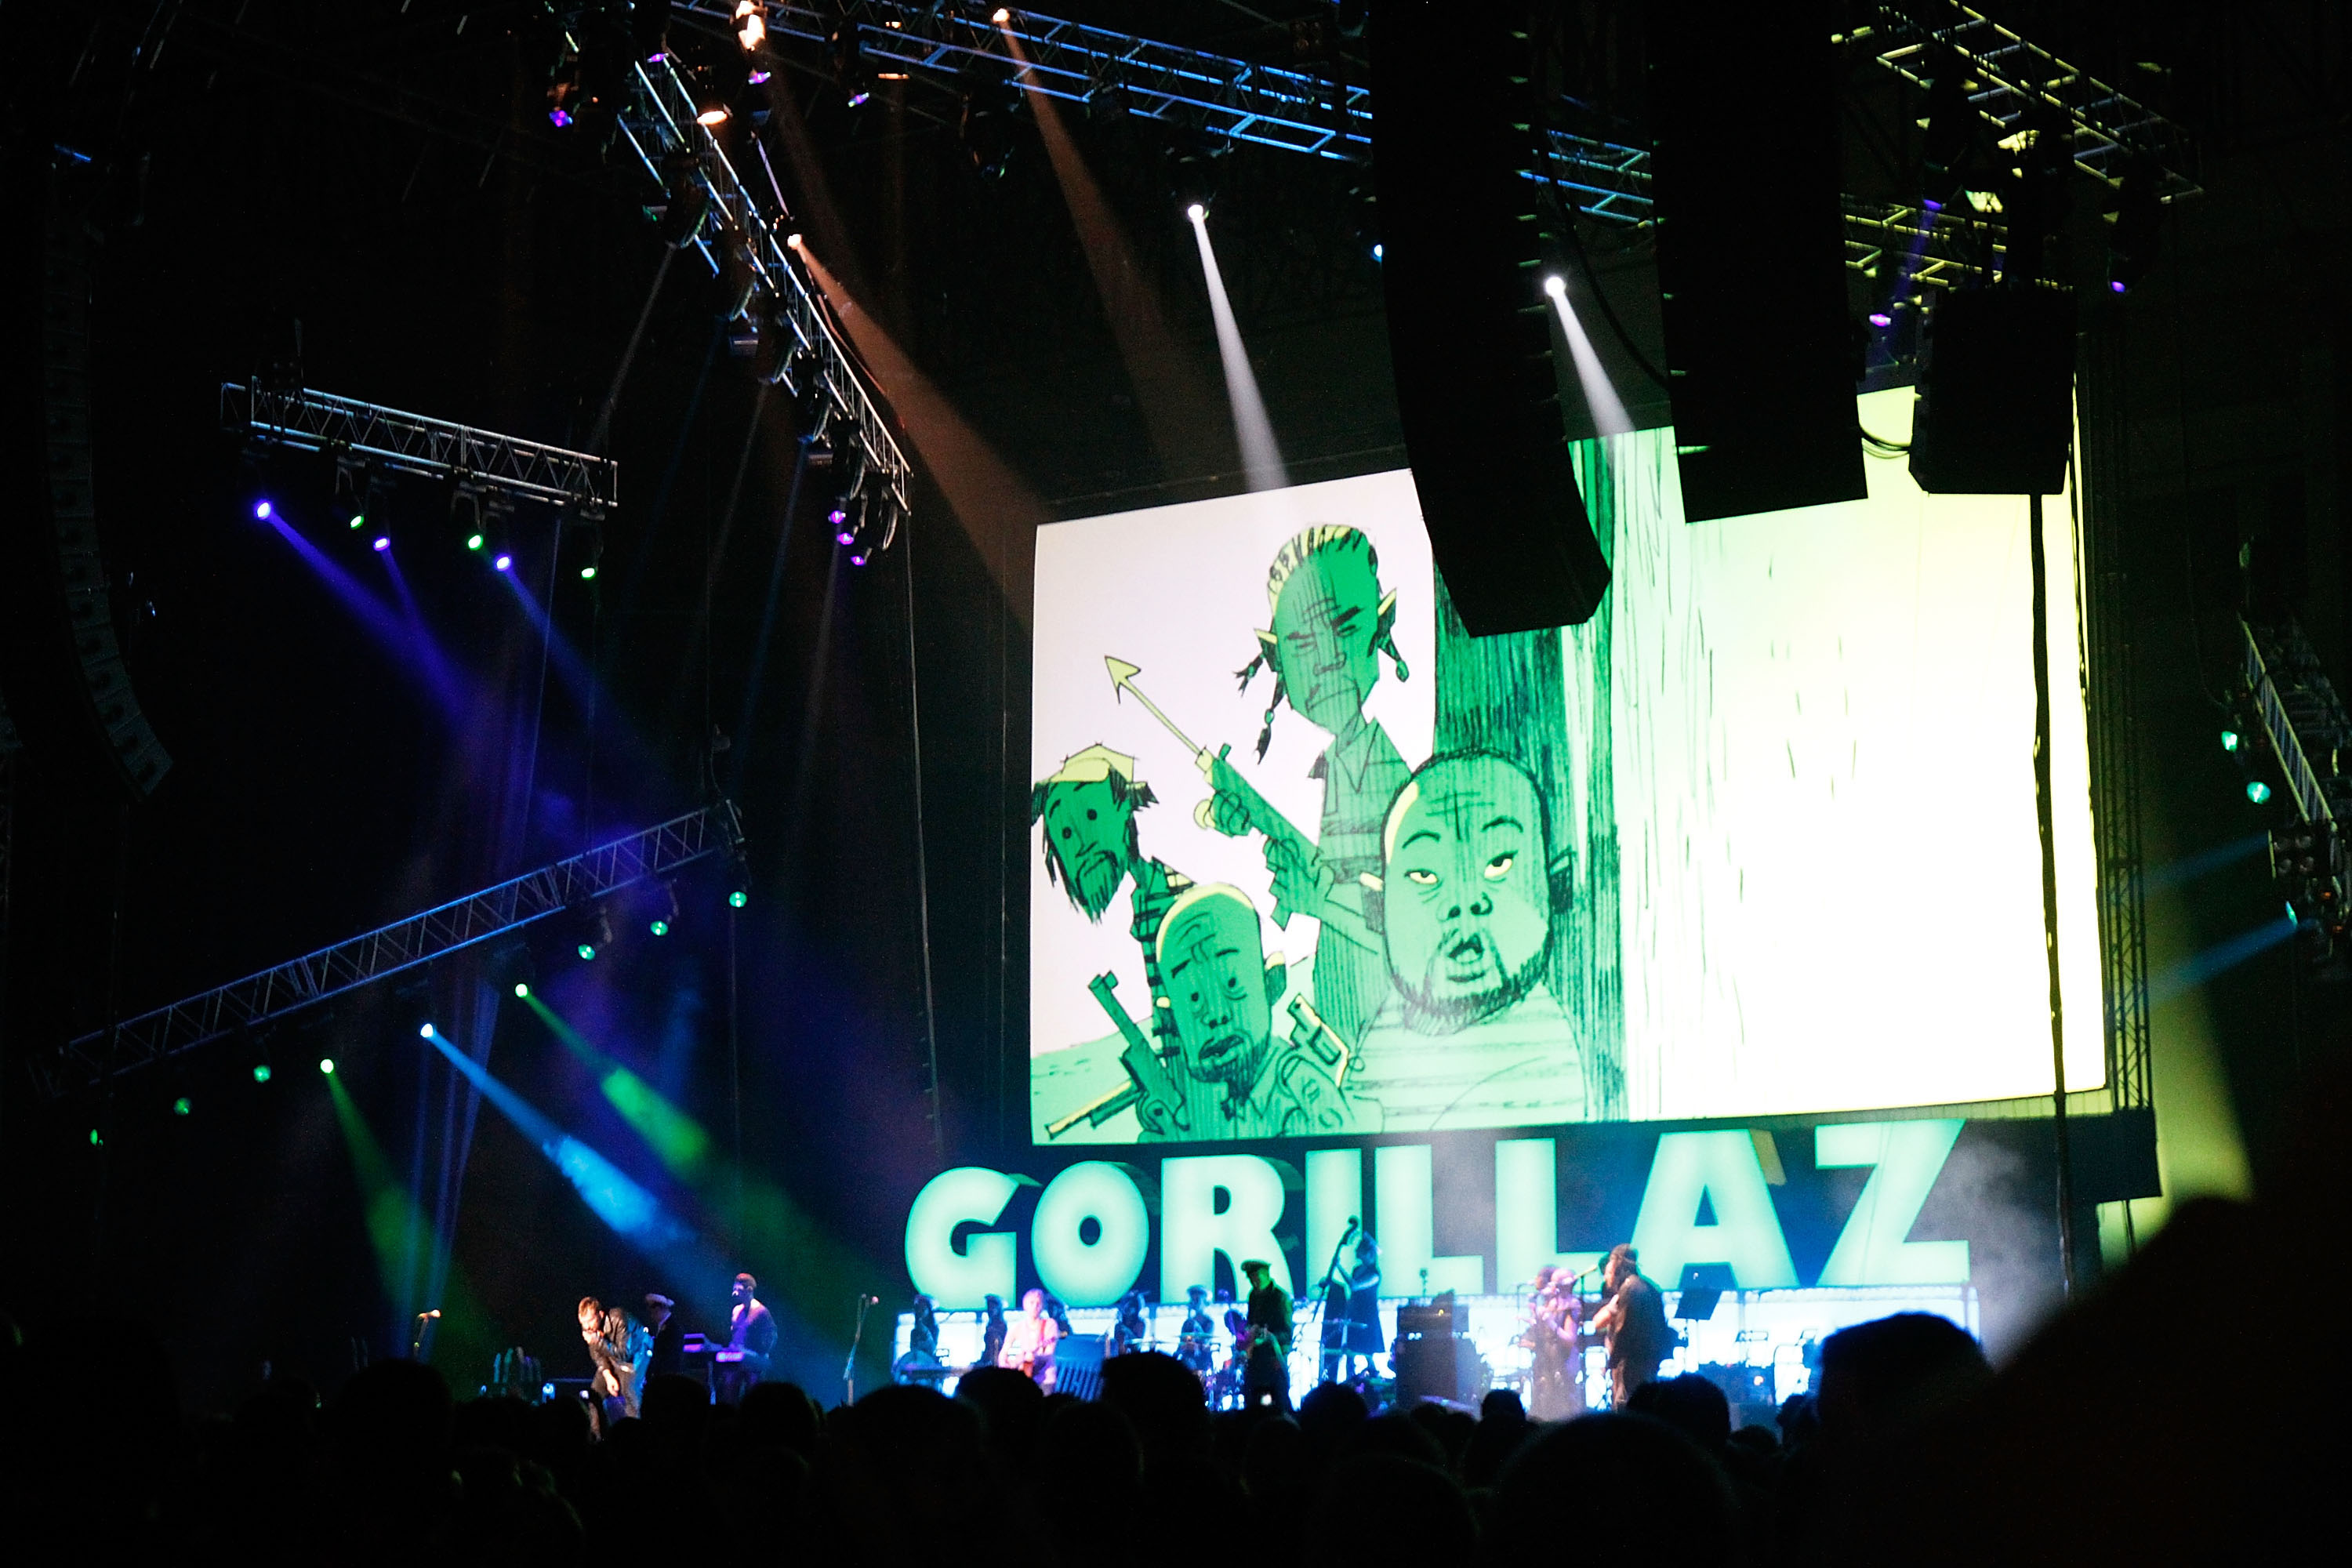 The Gorillaz performs on stage at The Burswood Dome on Dec. 6, 2010 in Perth, Australia.